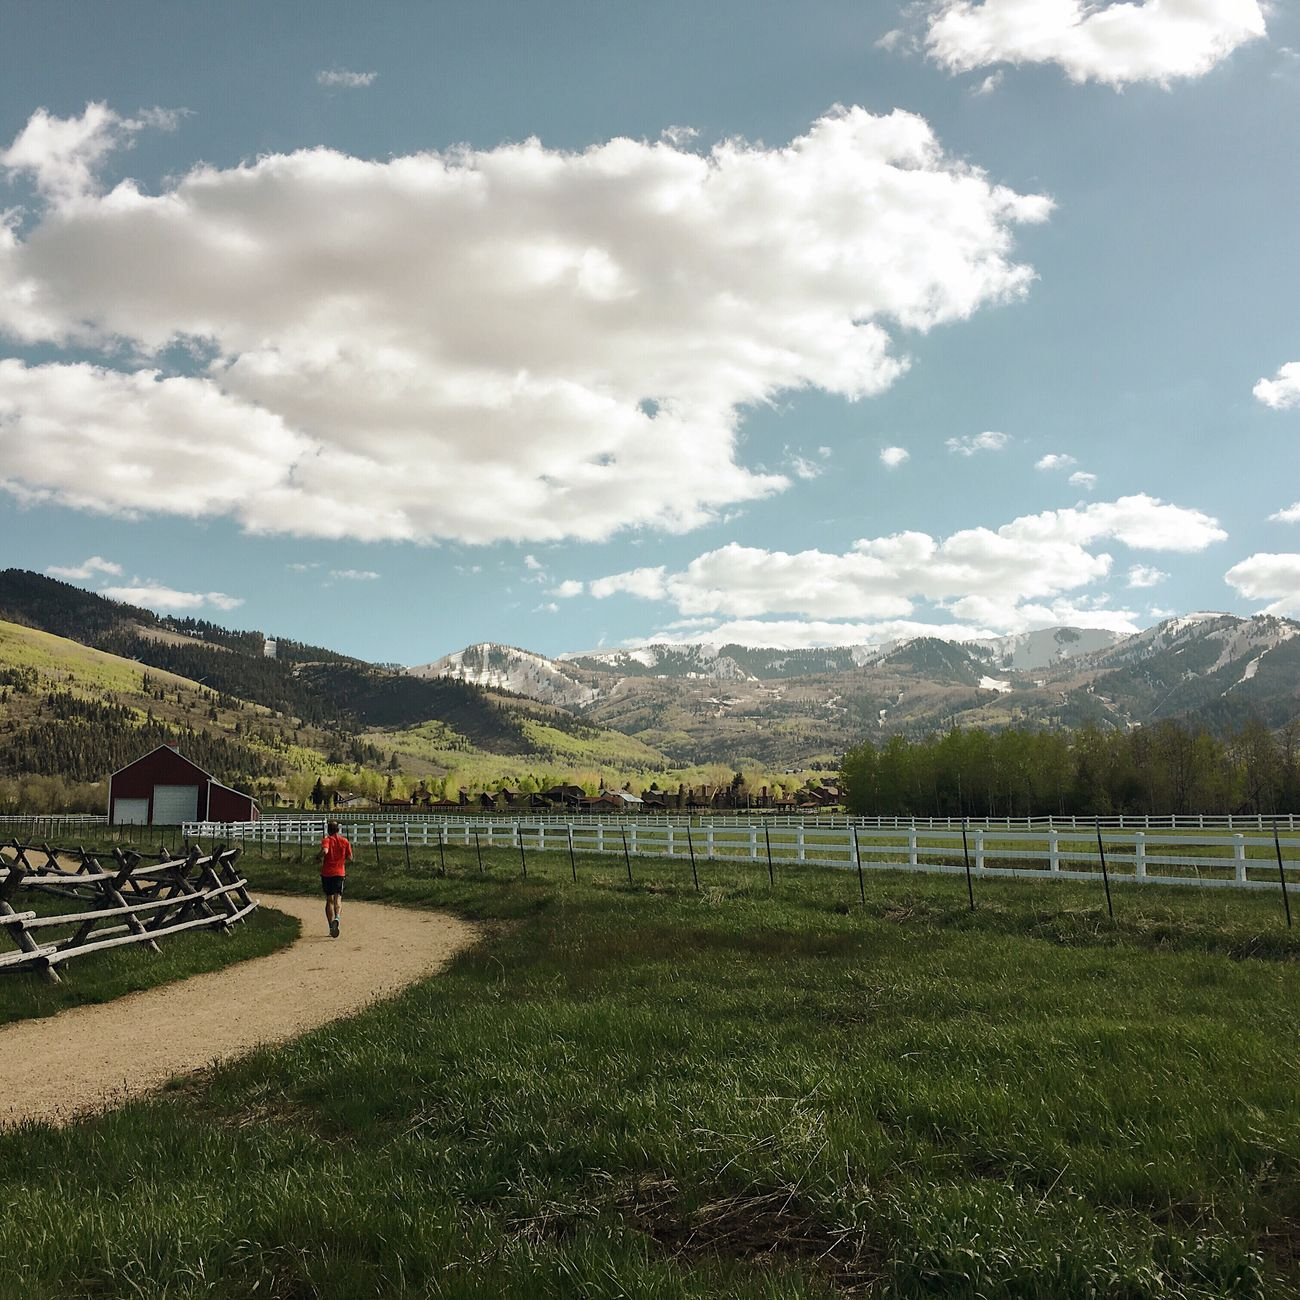 running in between the farms tonight after work. Park City, Utah